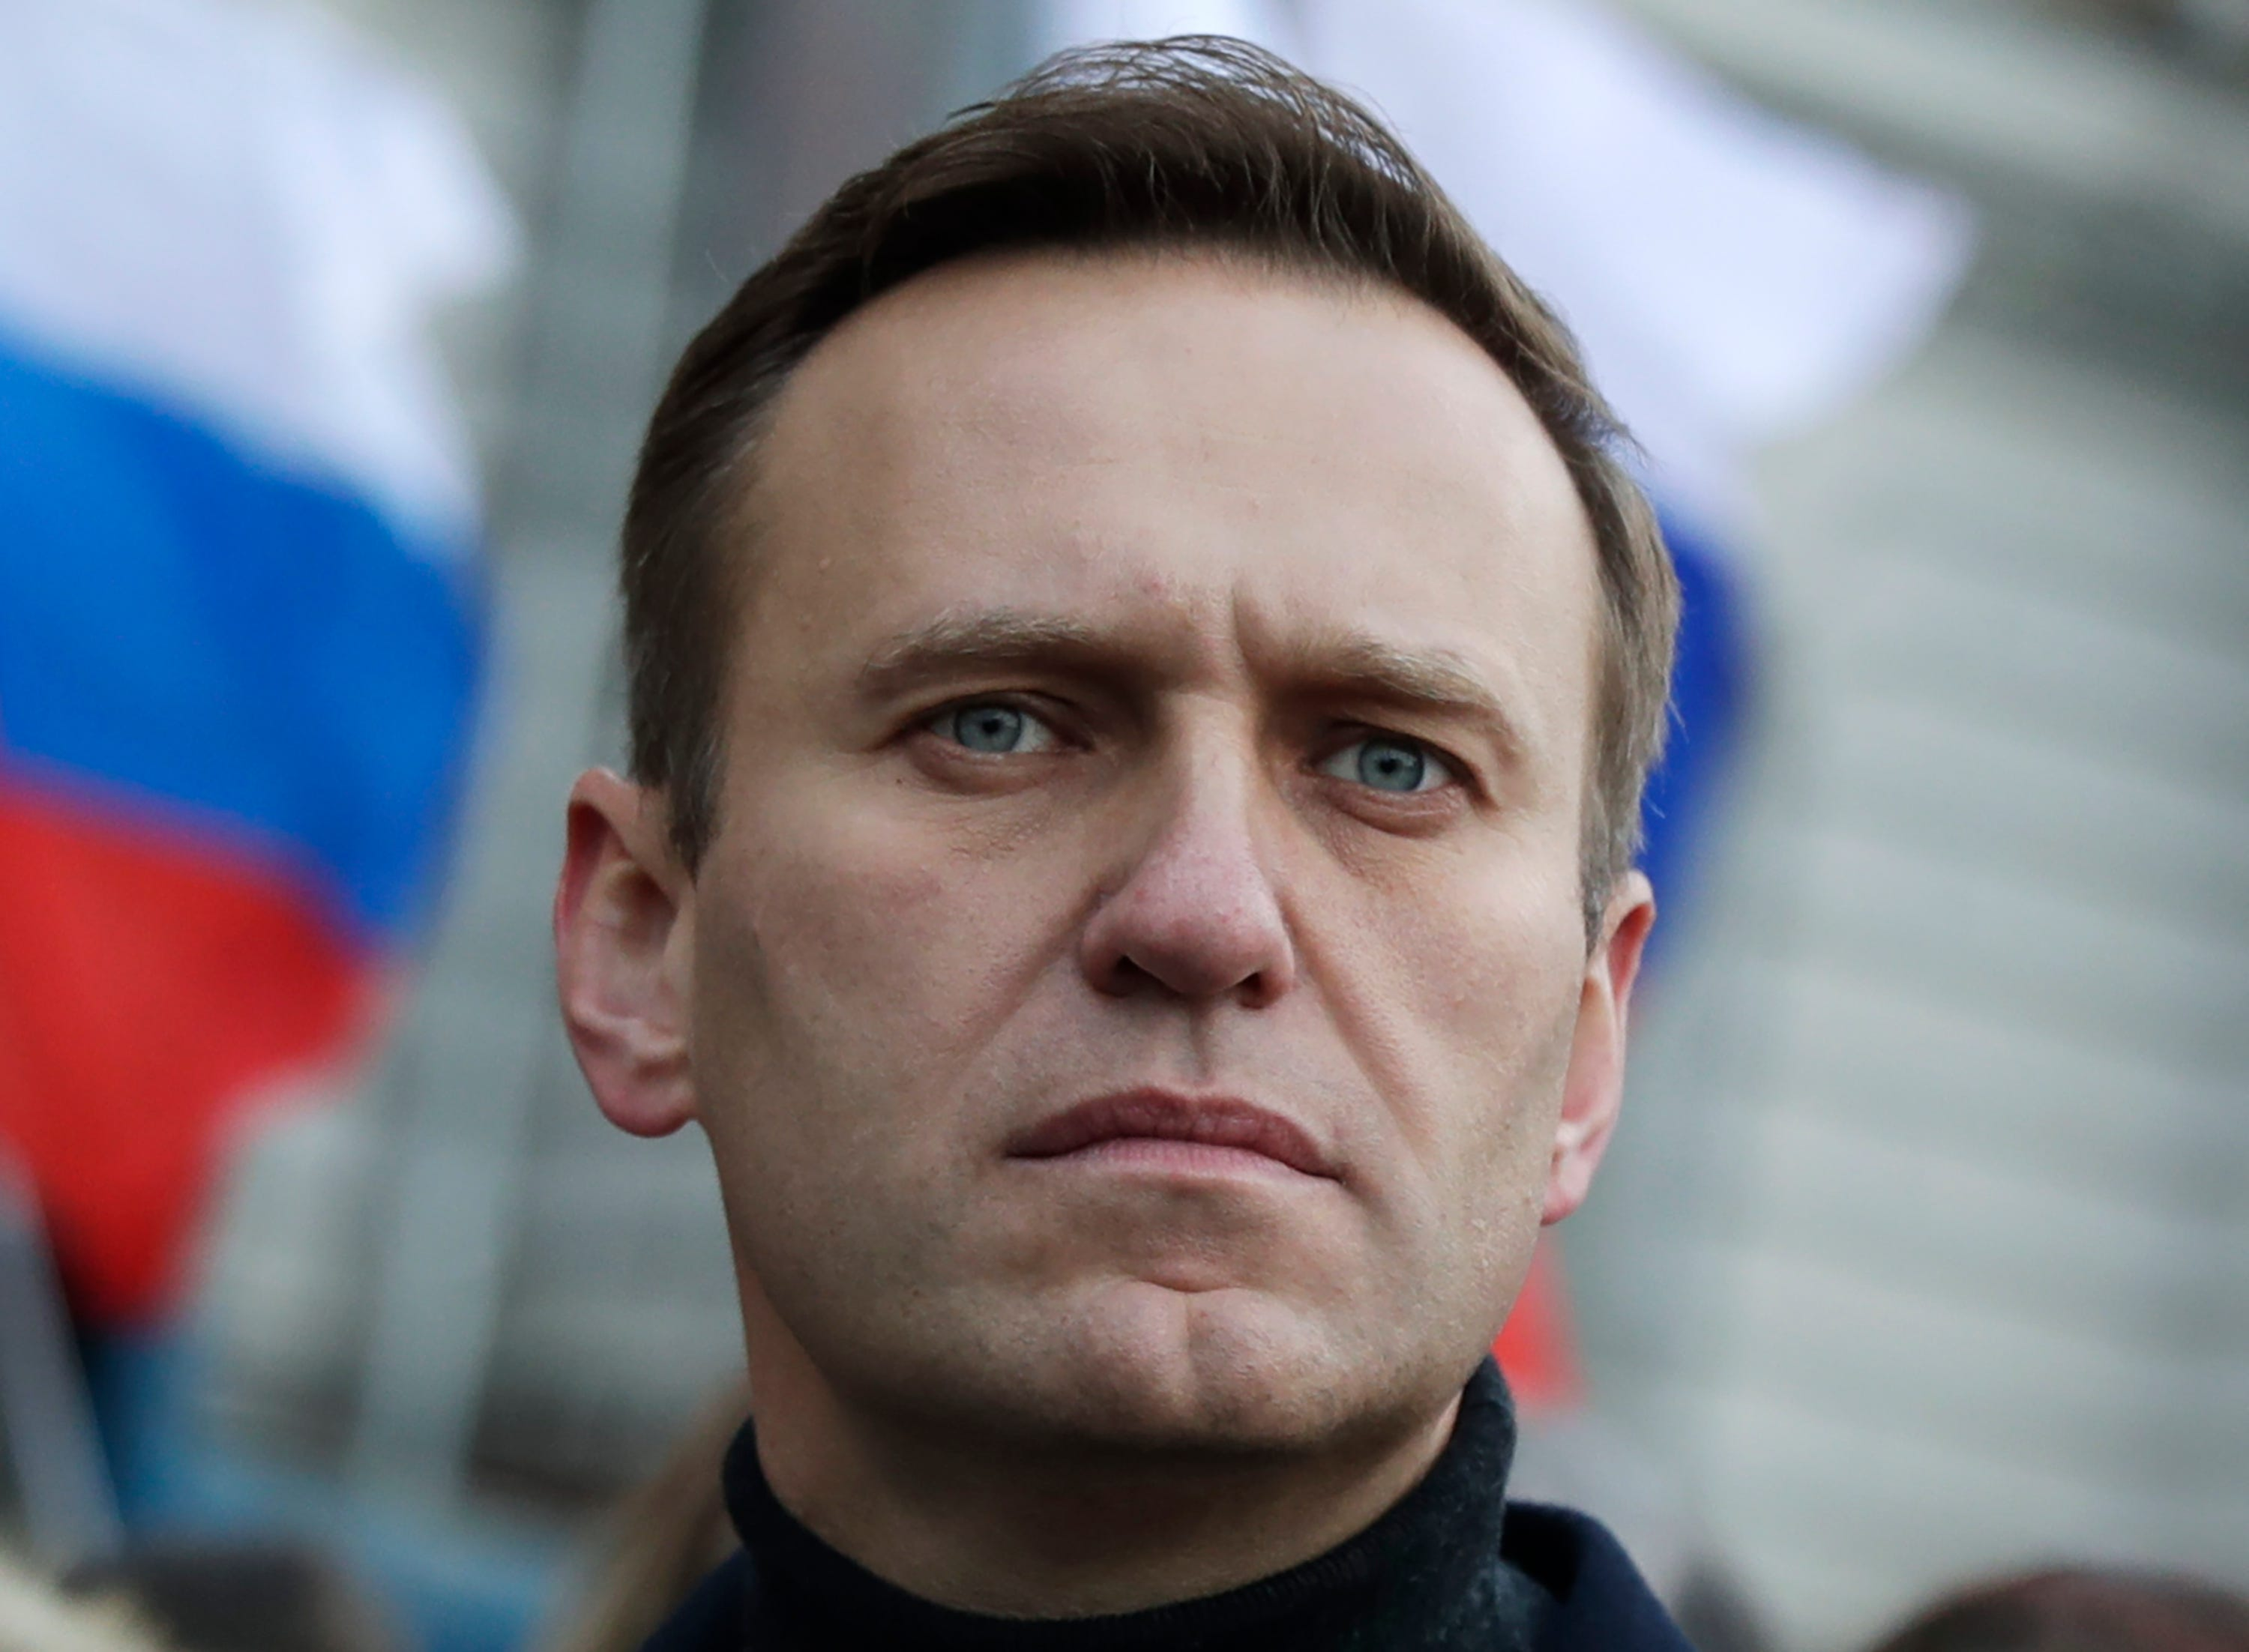 White House warns Russia will be held accountable if Kremlin critic Alexei Navalny dies